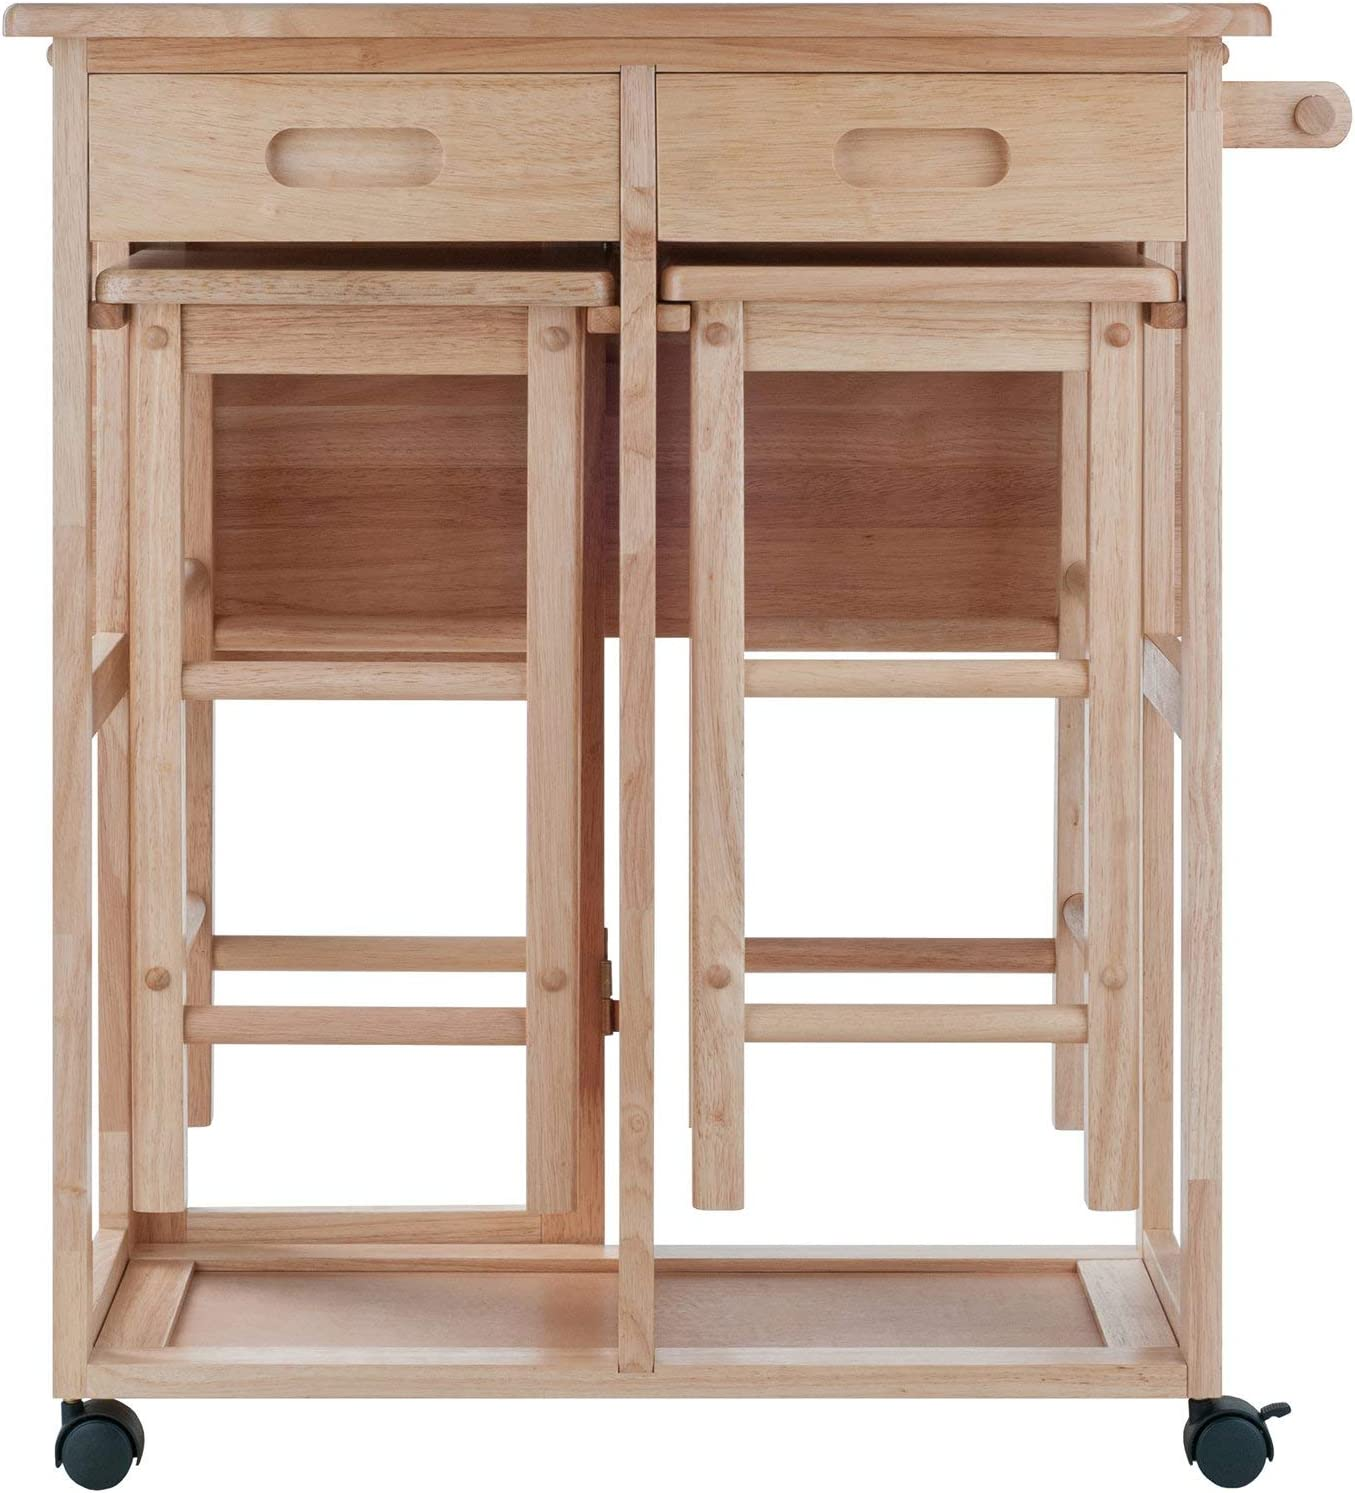 Drop Leaf Table Kitchen Cart with 2 Stools in Natural Finish